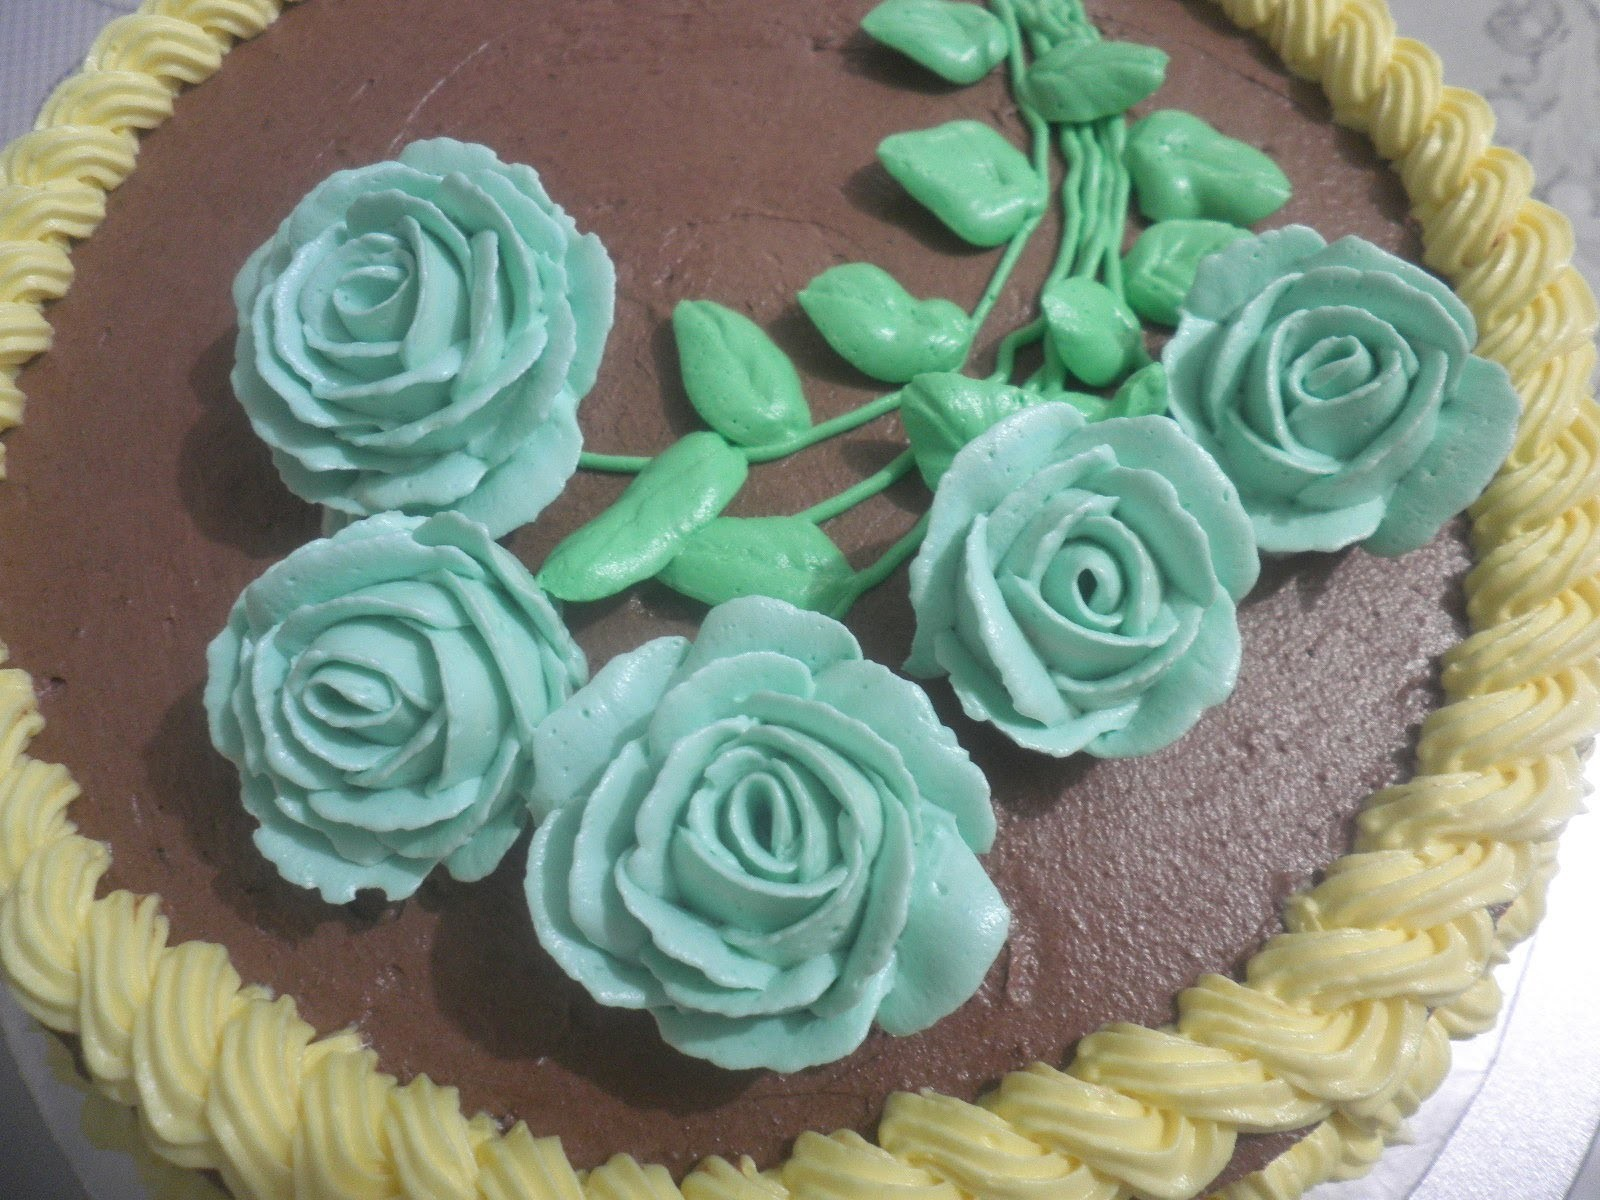 Decorating buttercream roses cake (the whole process!)